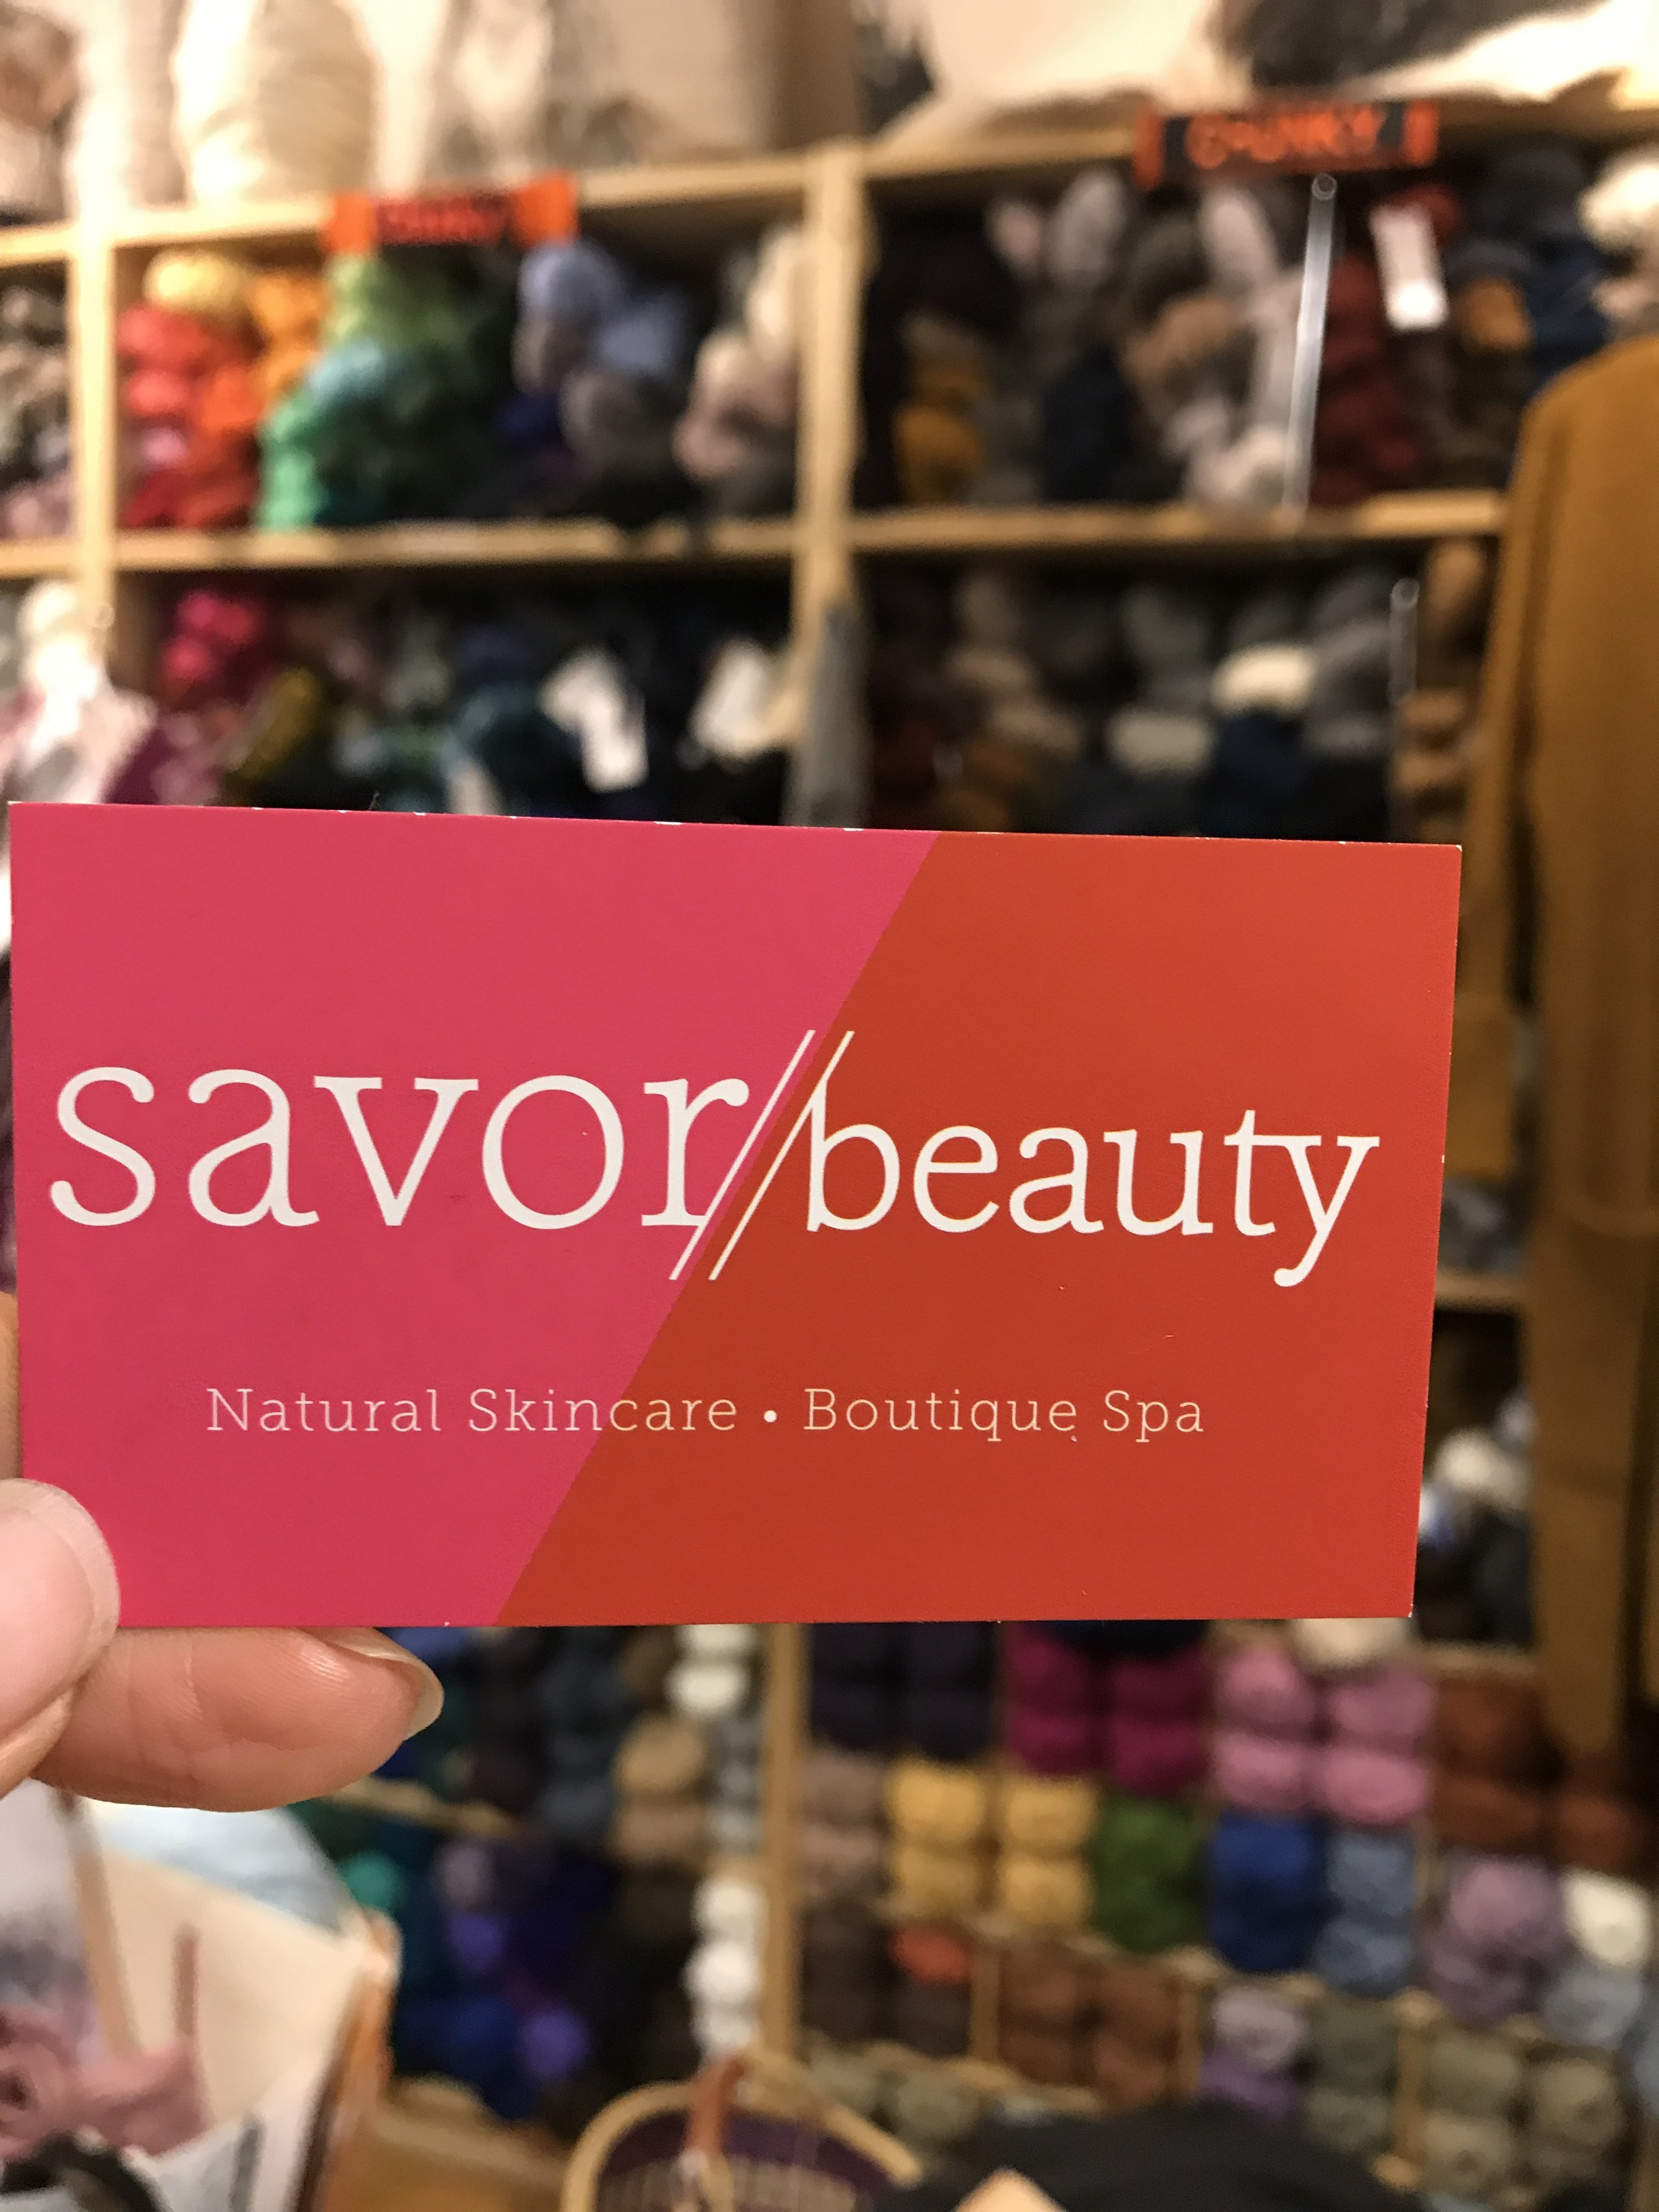 Savor Beauty  Master Class Party for 4  Value $320  Starting Bid $160.-